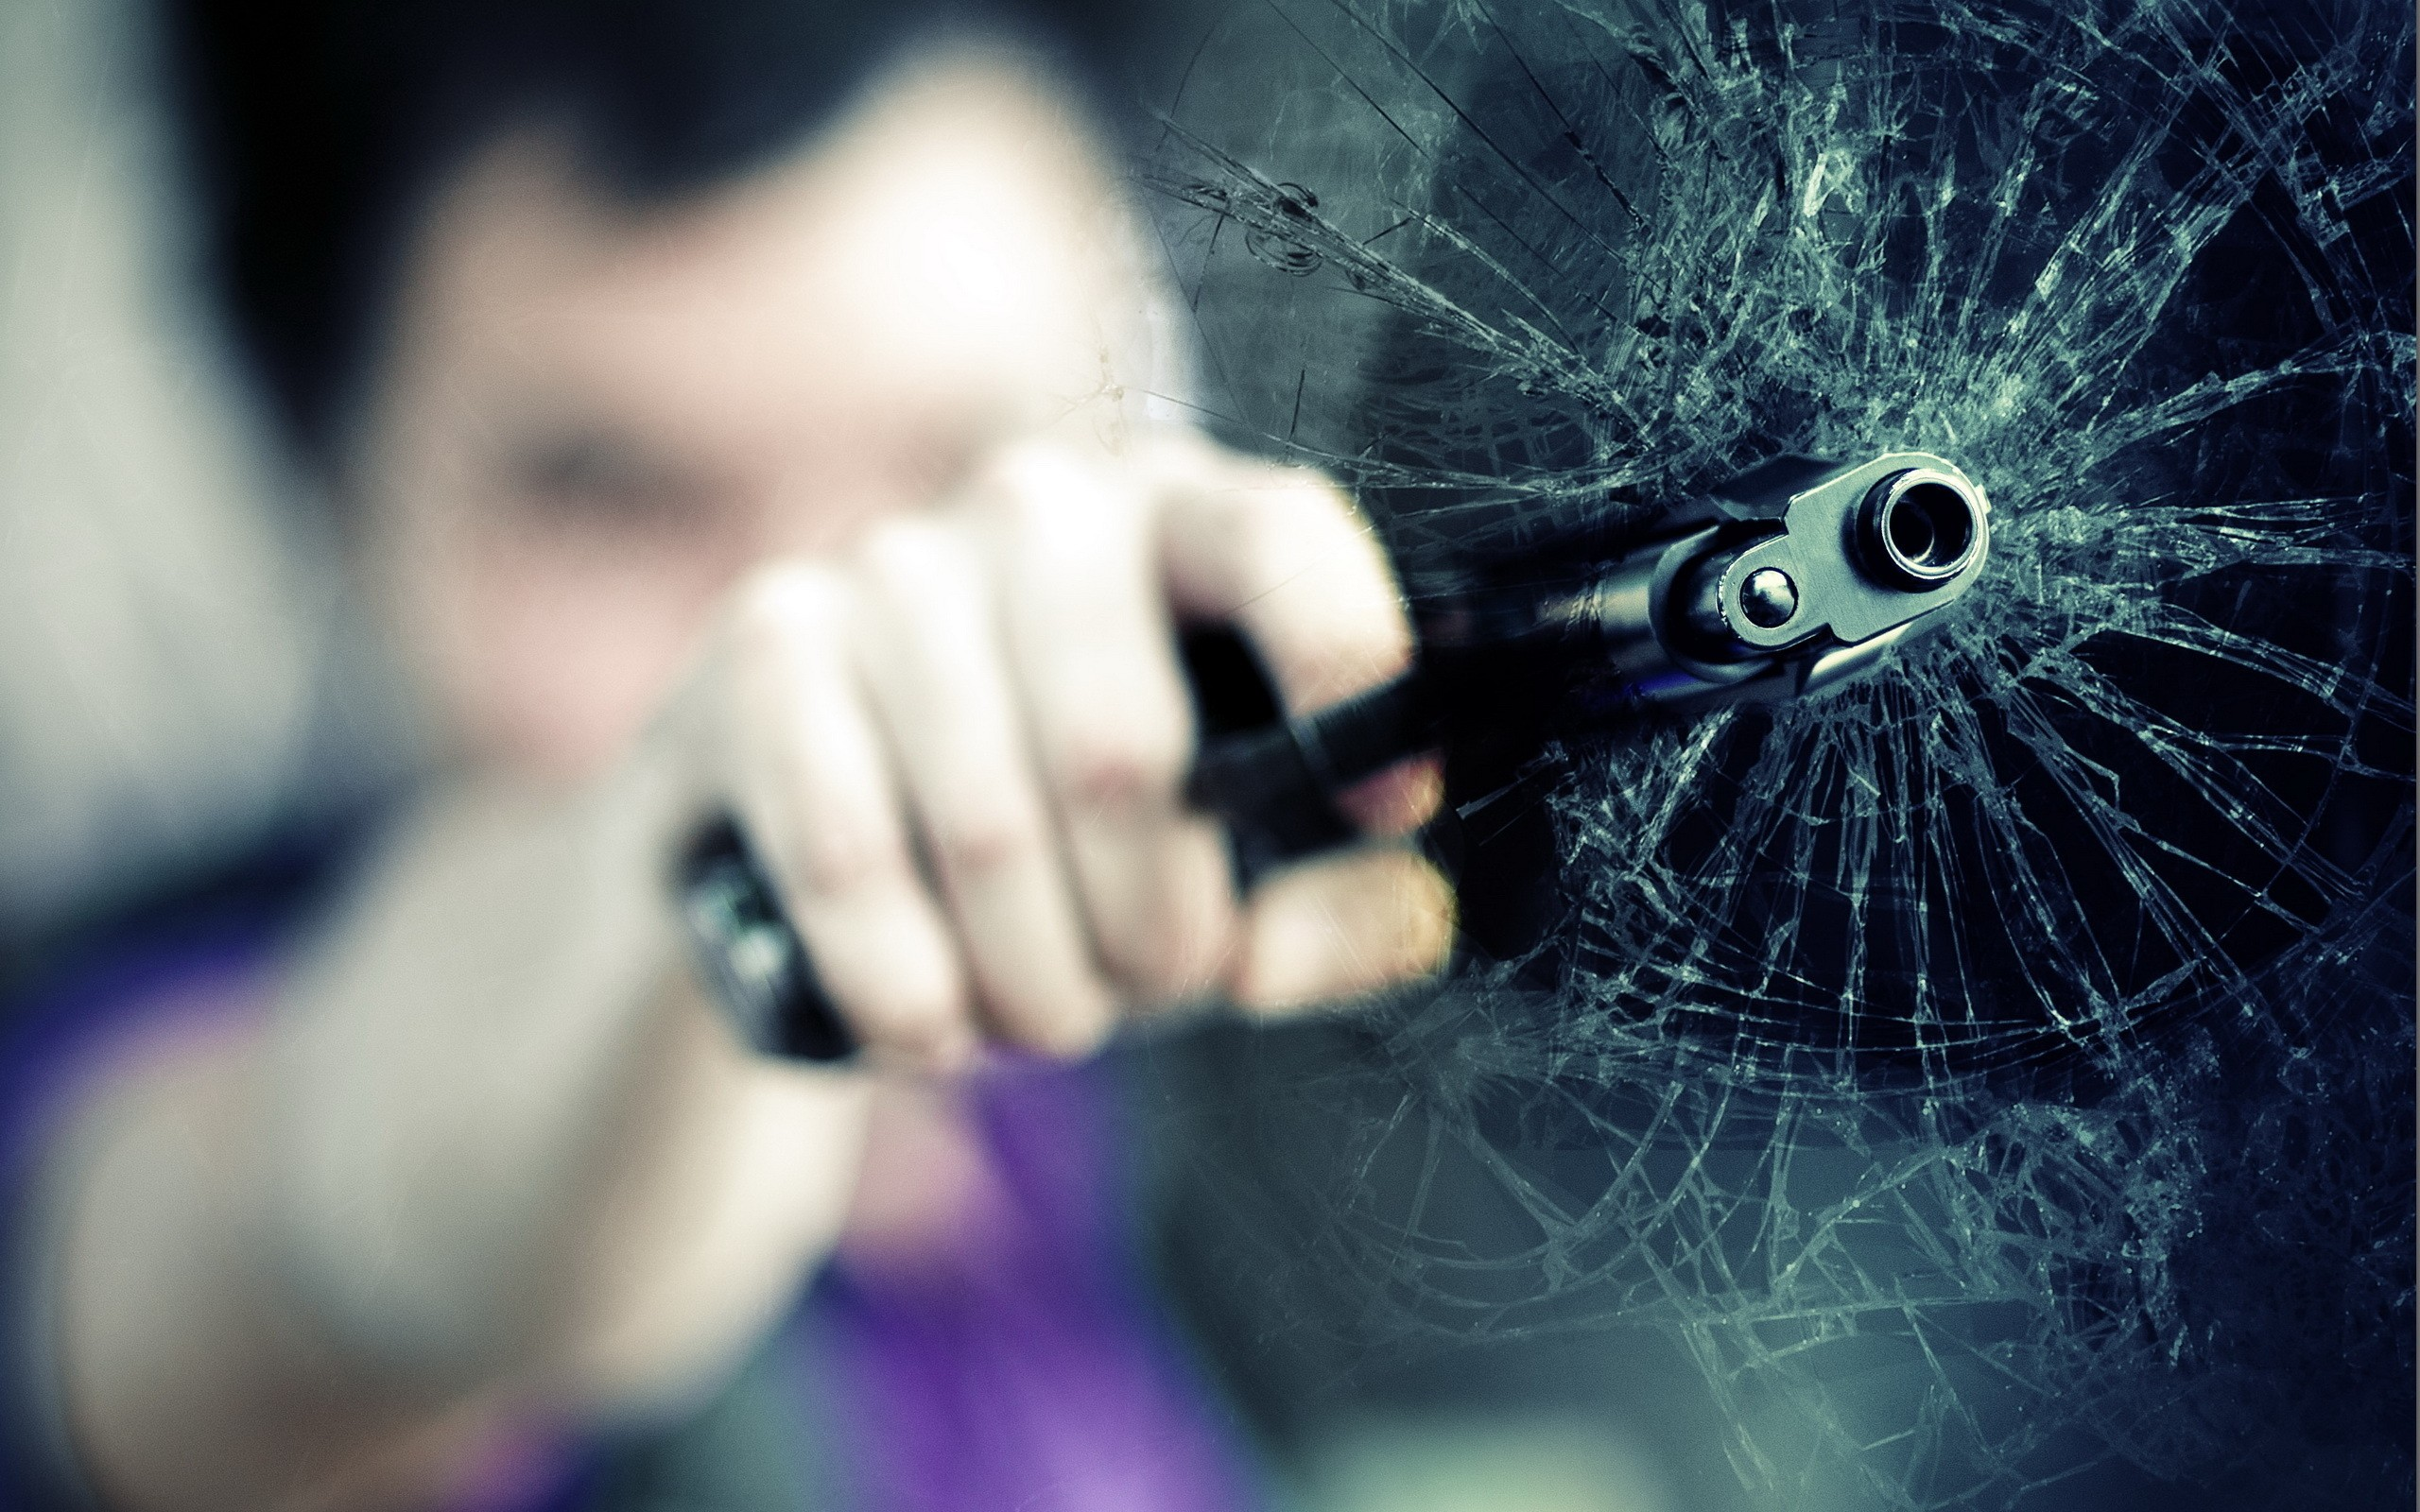 Stylish Girl With Guitar Wallpapers Guns Glass Broken Glass Out Of Focus Wallpaper 2560x1600